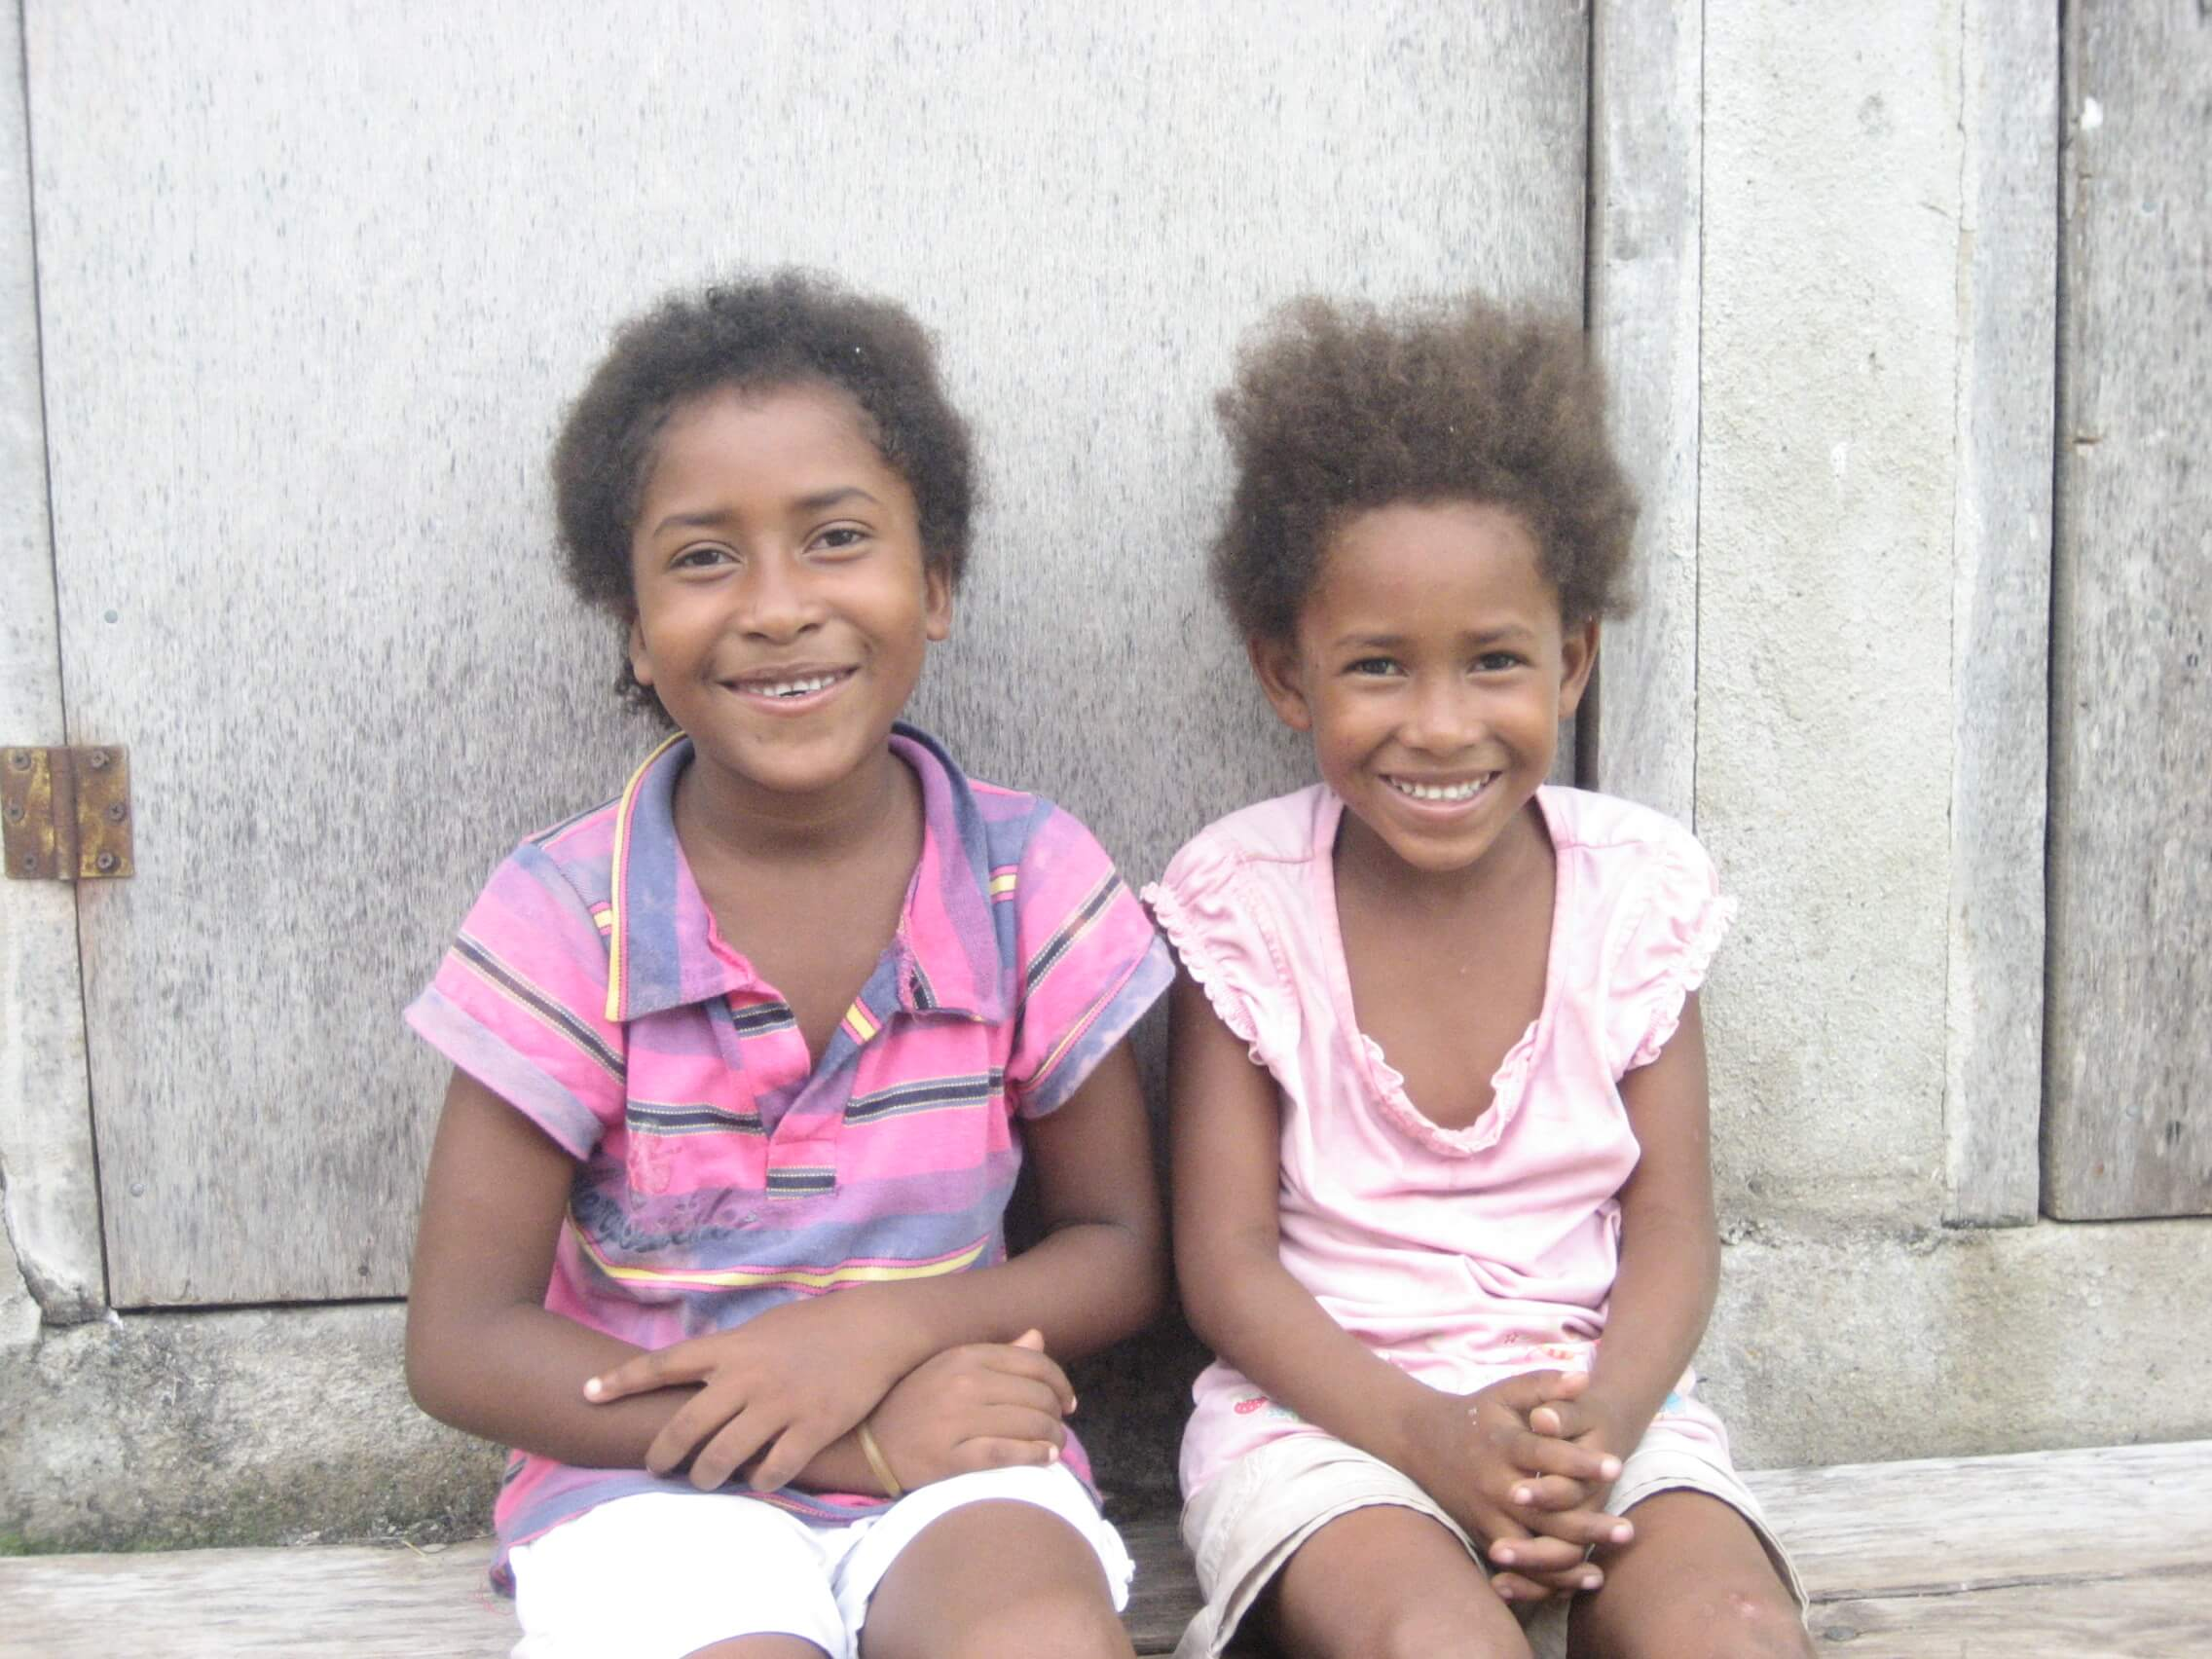 Belize 2 girls